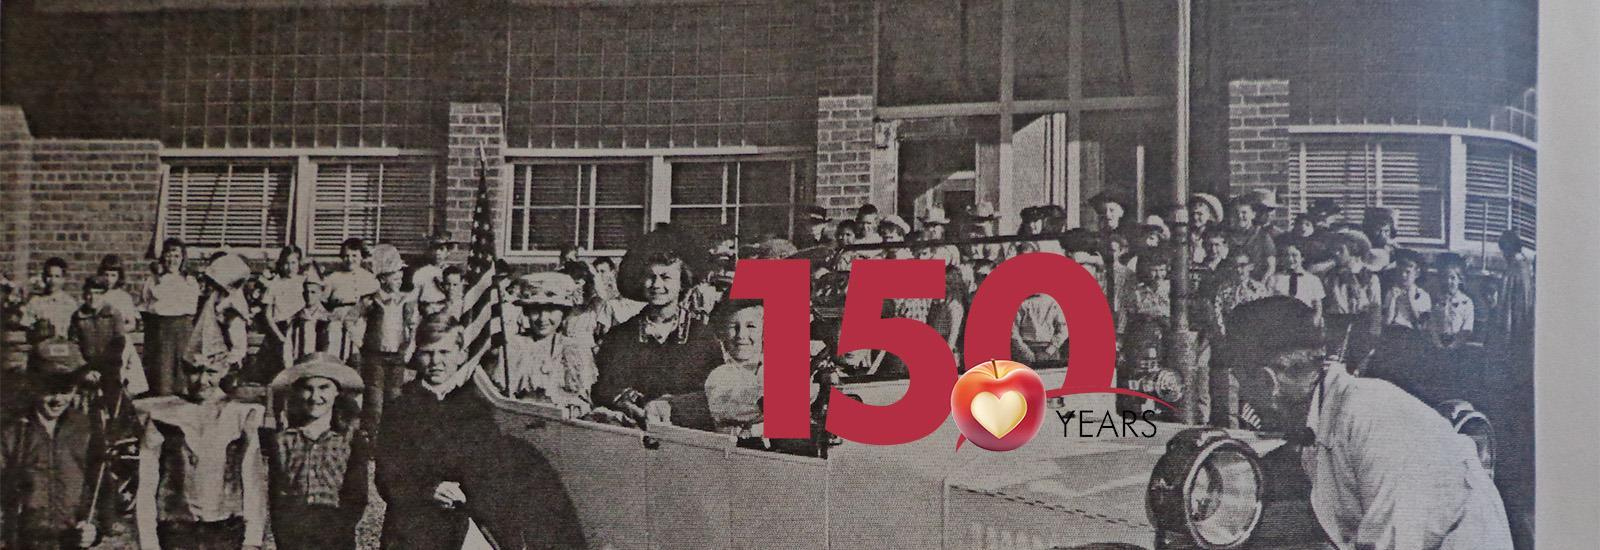 Happy 150th Birthday to Tucson Unified School District! #TUSD150